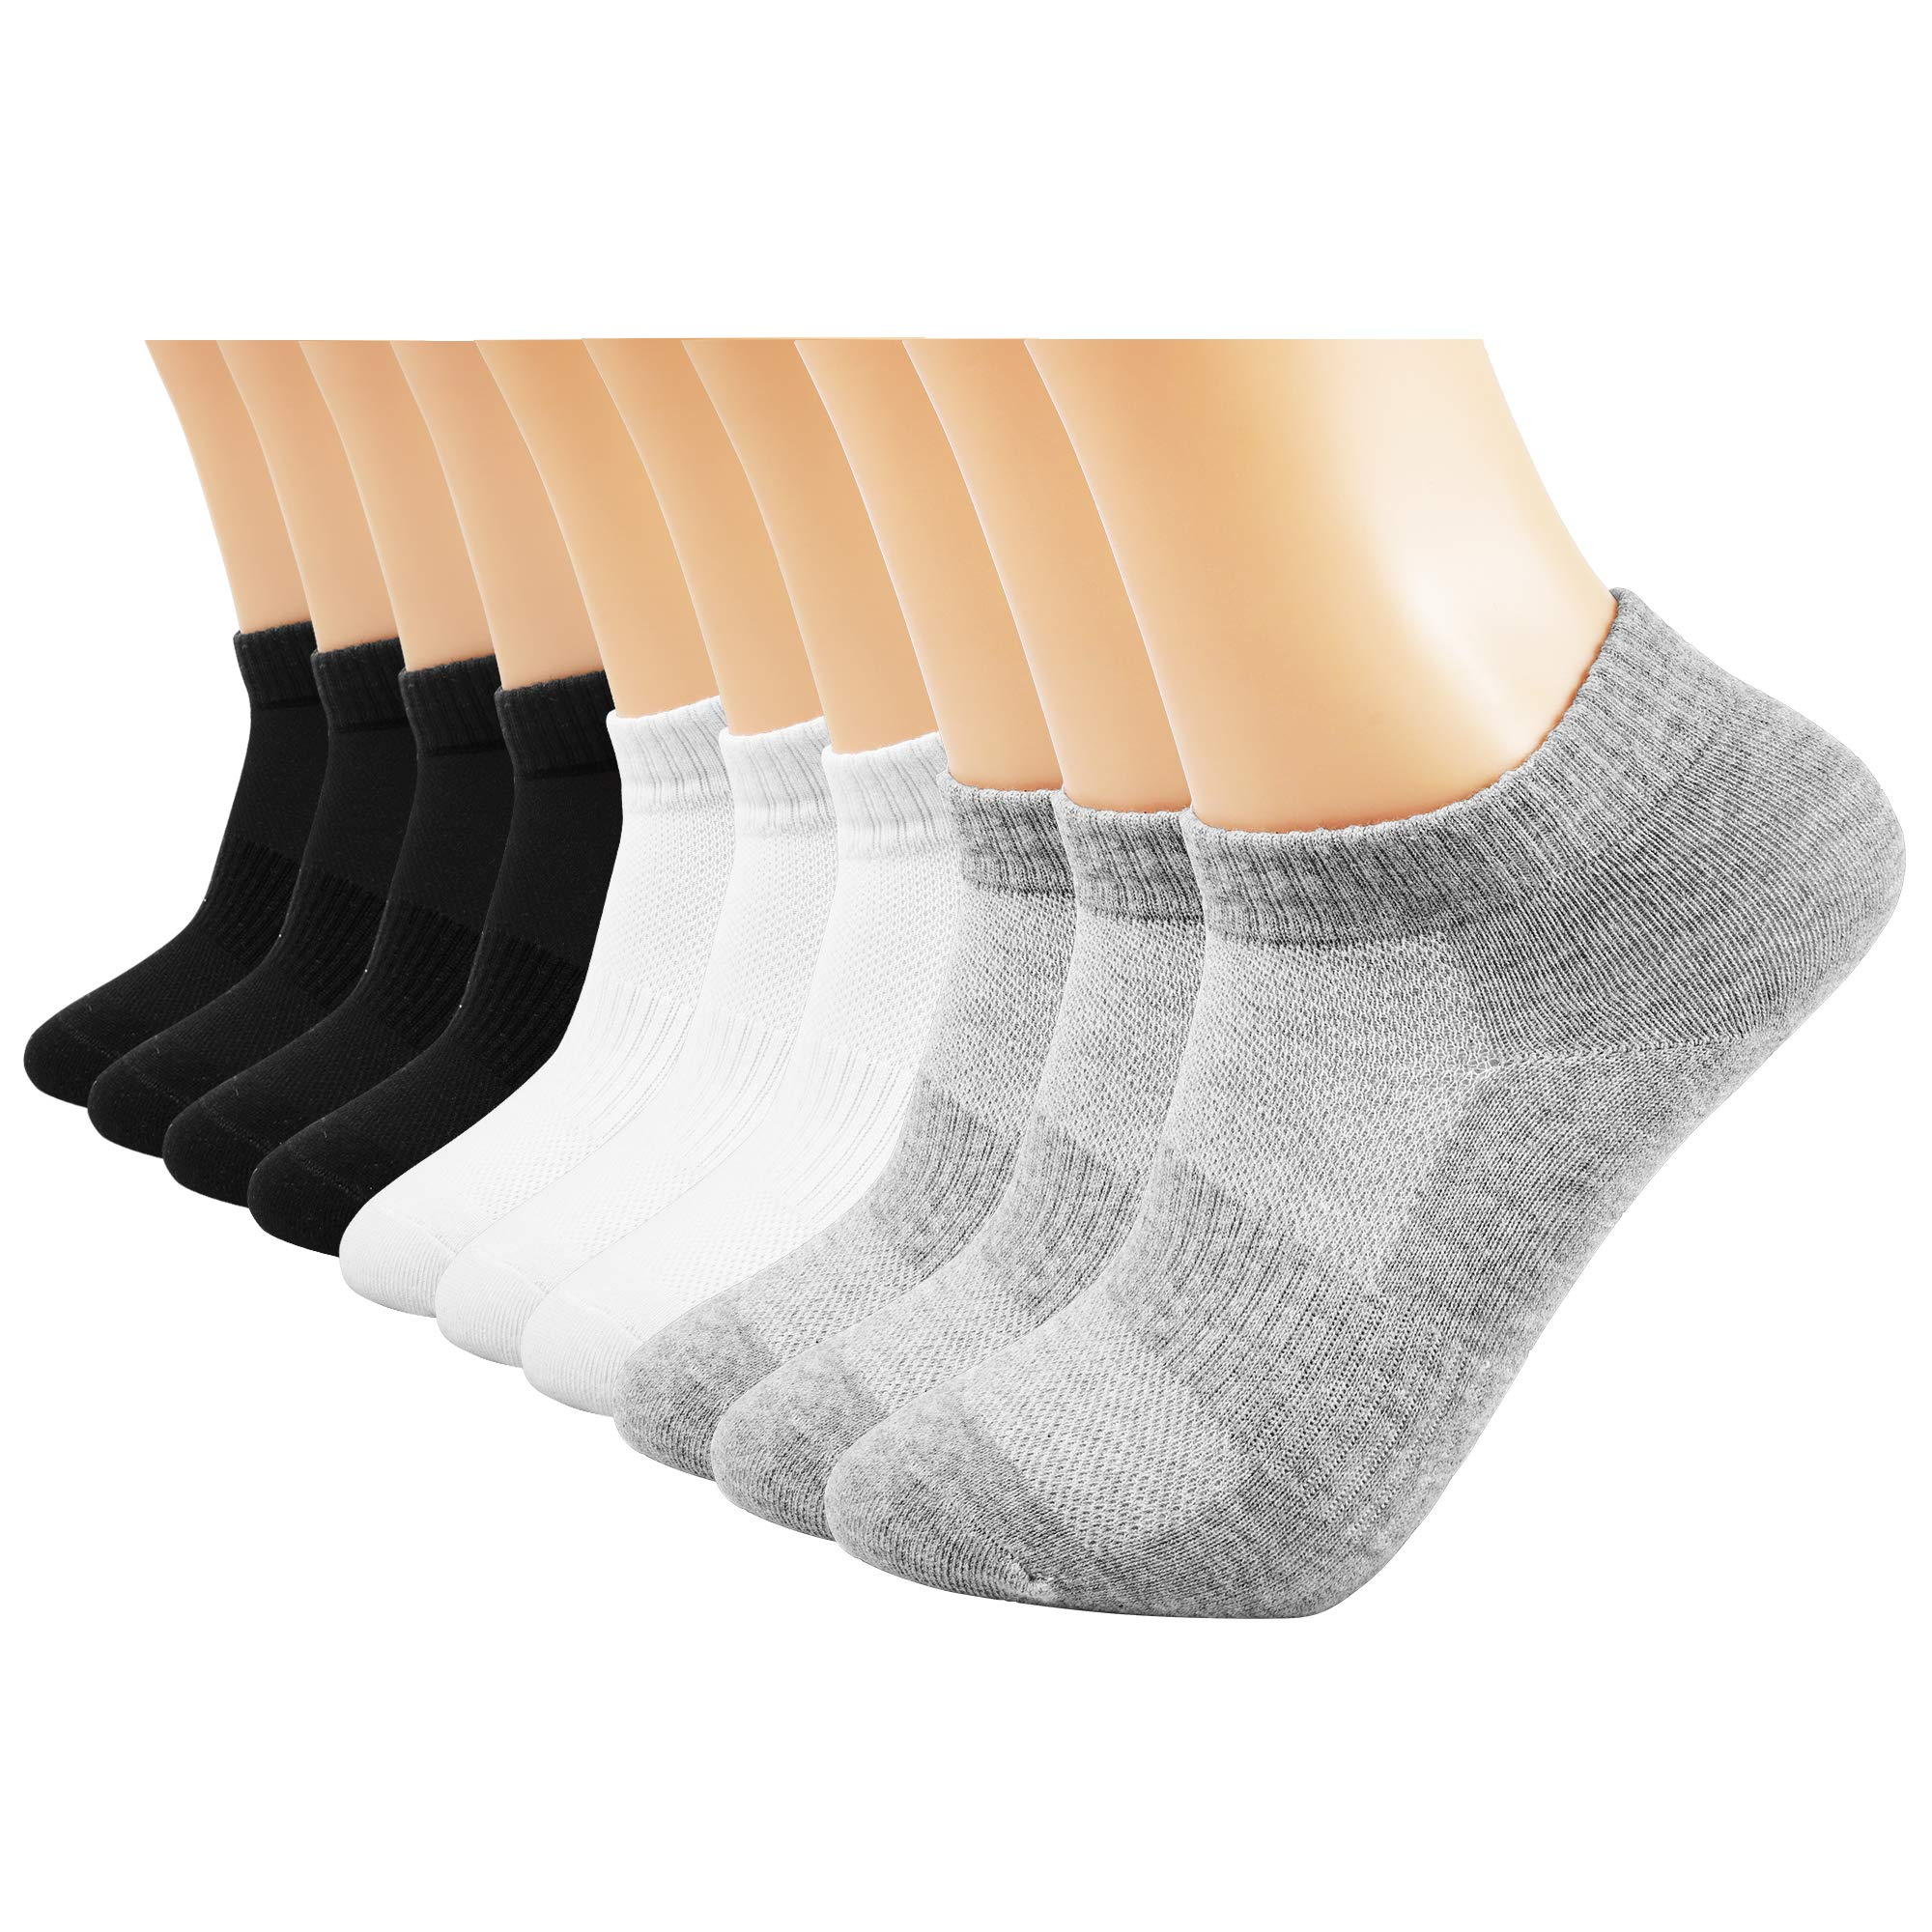 AVANTMEN Men\'s Ankle Socks 10 Pack Solid Low Cut Running Athletic Cotton Socks Moisture-wicking Casual Use 4 Seasons (Black 4 + White 3 + Grey 3)